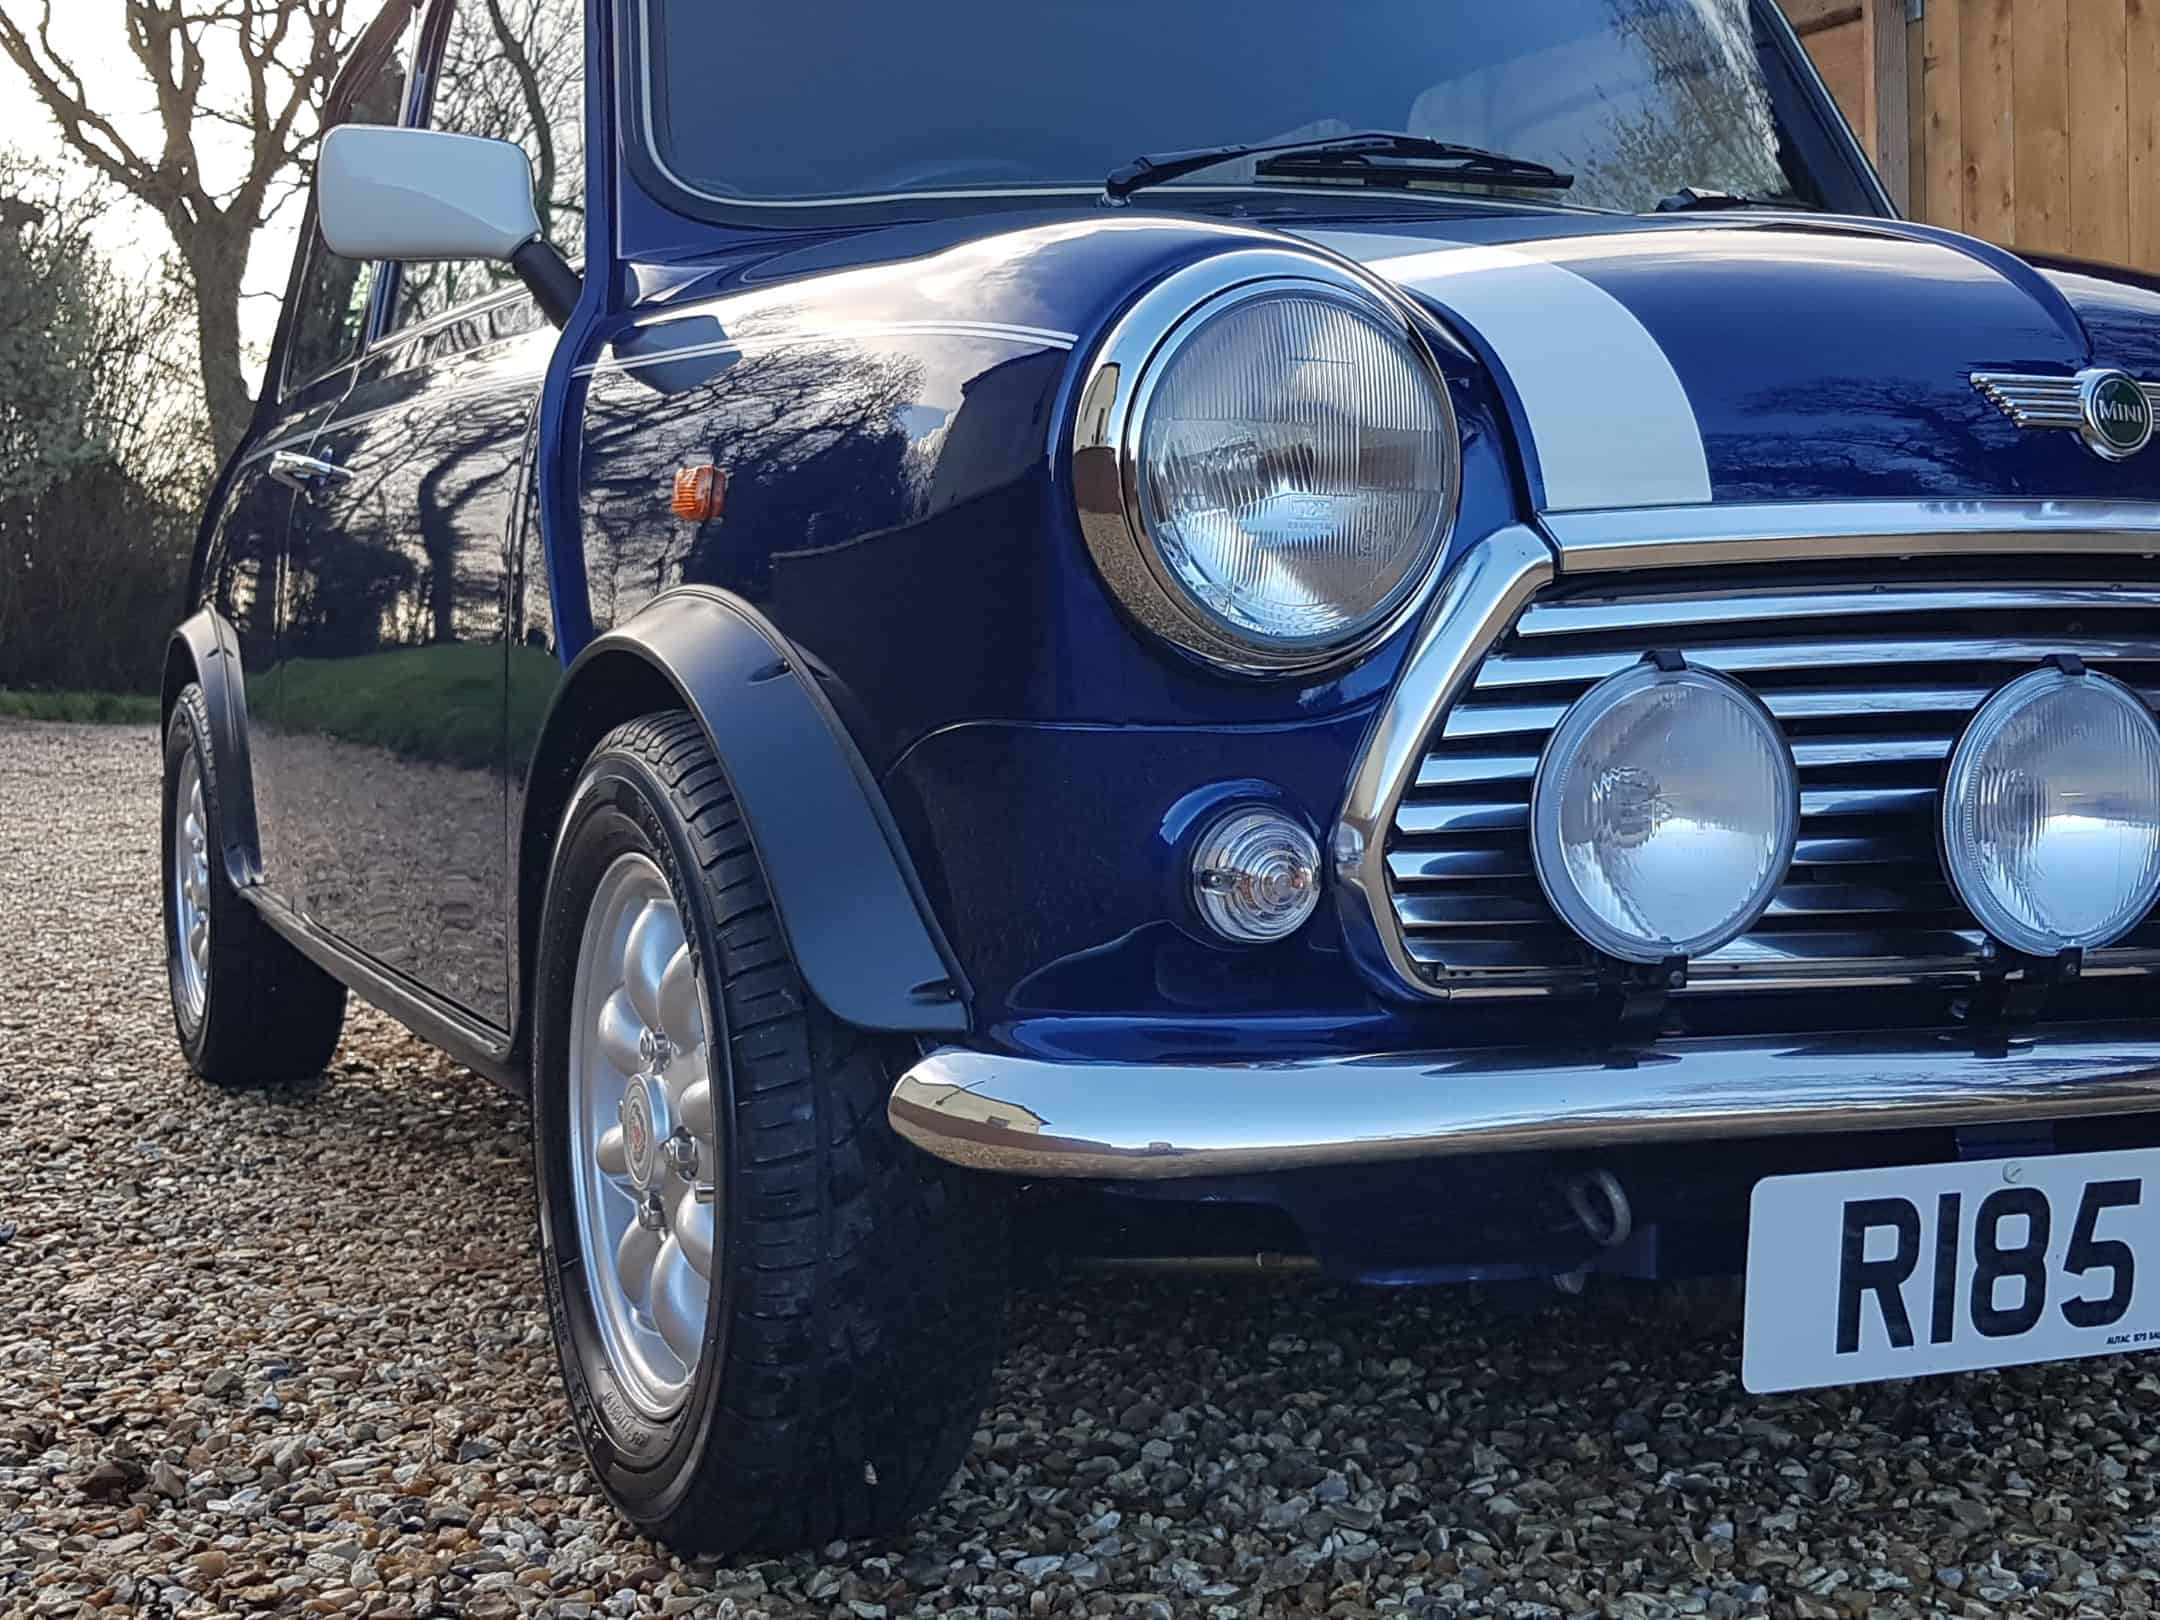 ** NOW SOLD ** Immaculate Mini Cooper On Just 13900 Miles From New!